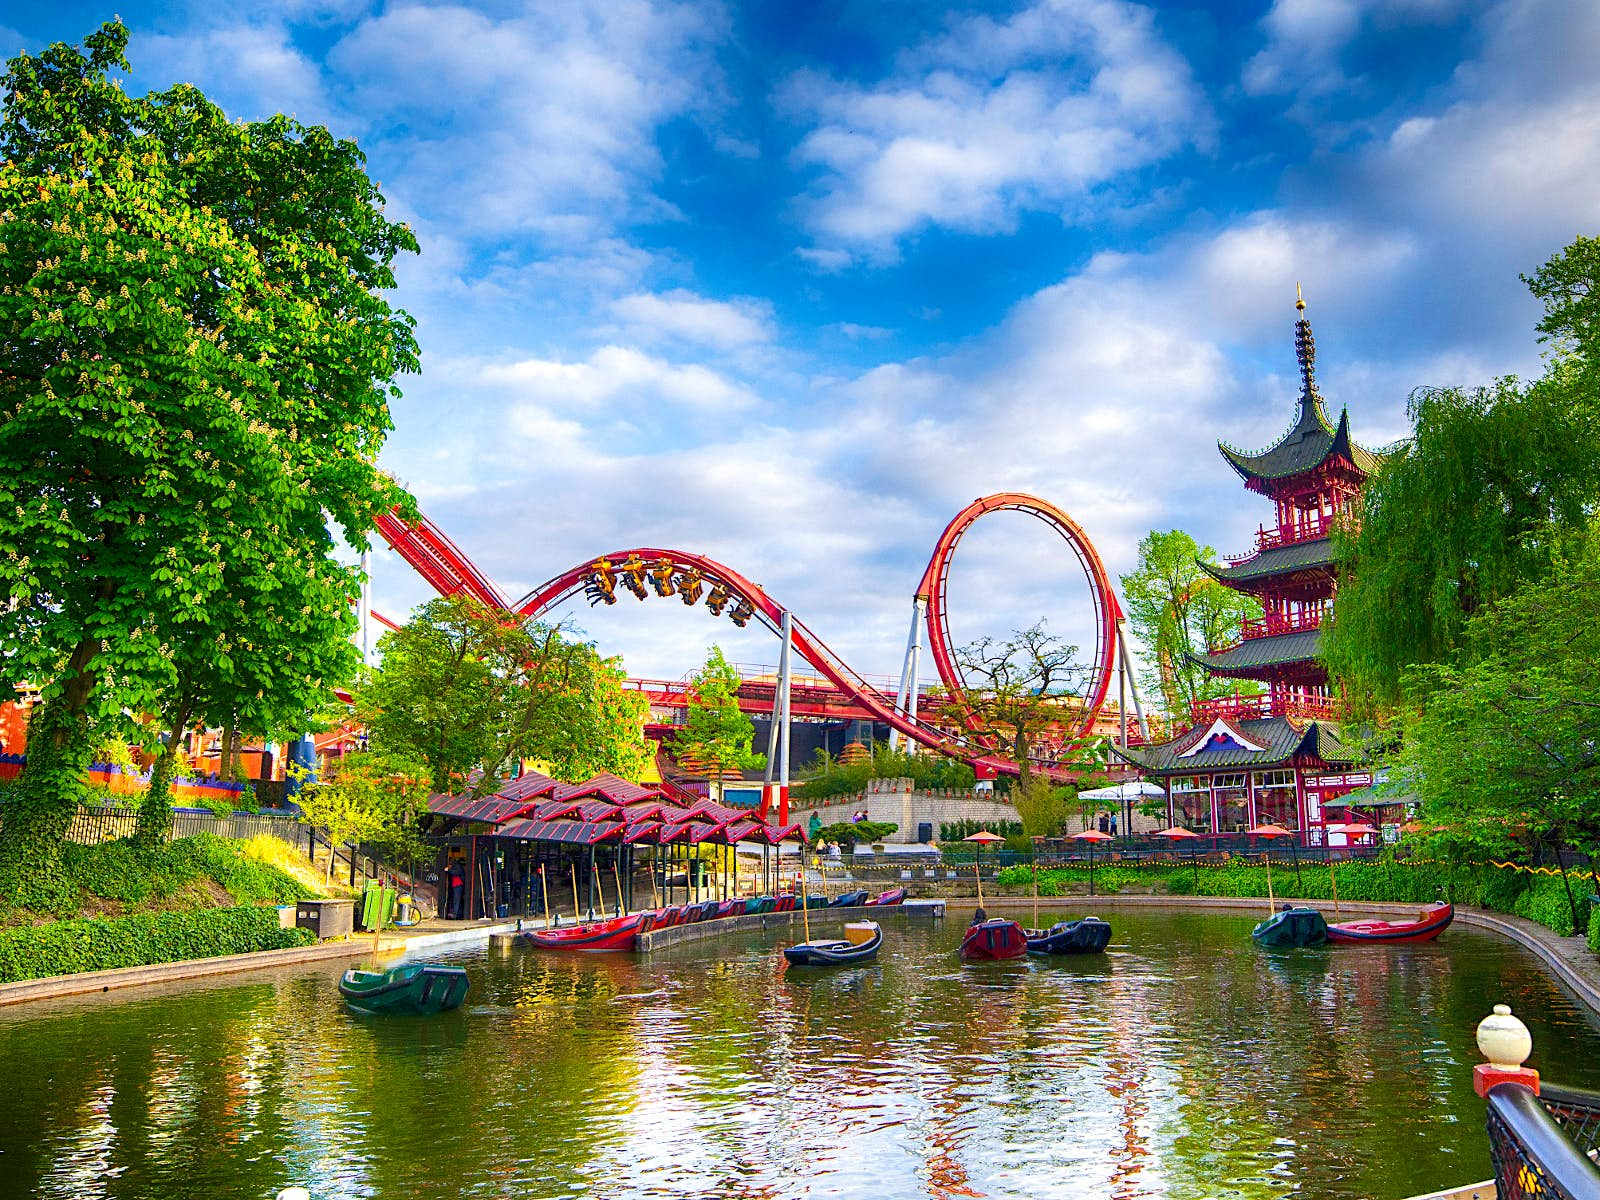 Disney alternatives - Colourful Tivoli Gardens in Copenhagen. A red rollercoaster twists over the park's lake which has small green and red boats floating on it